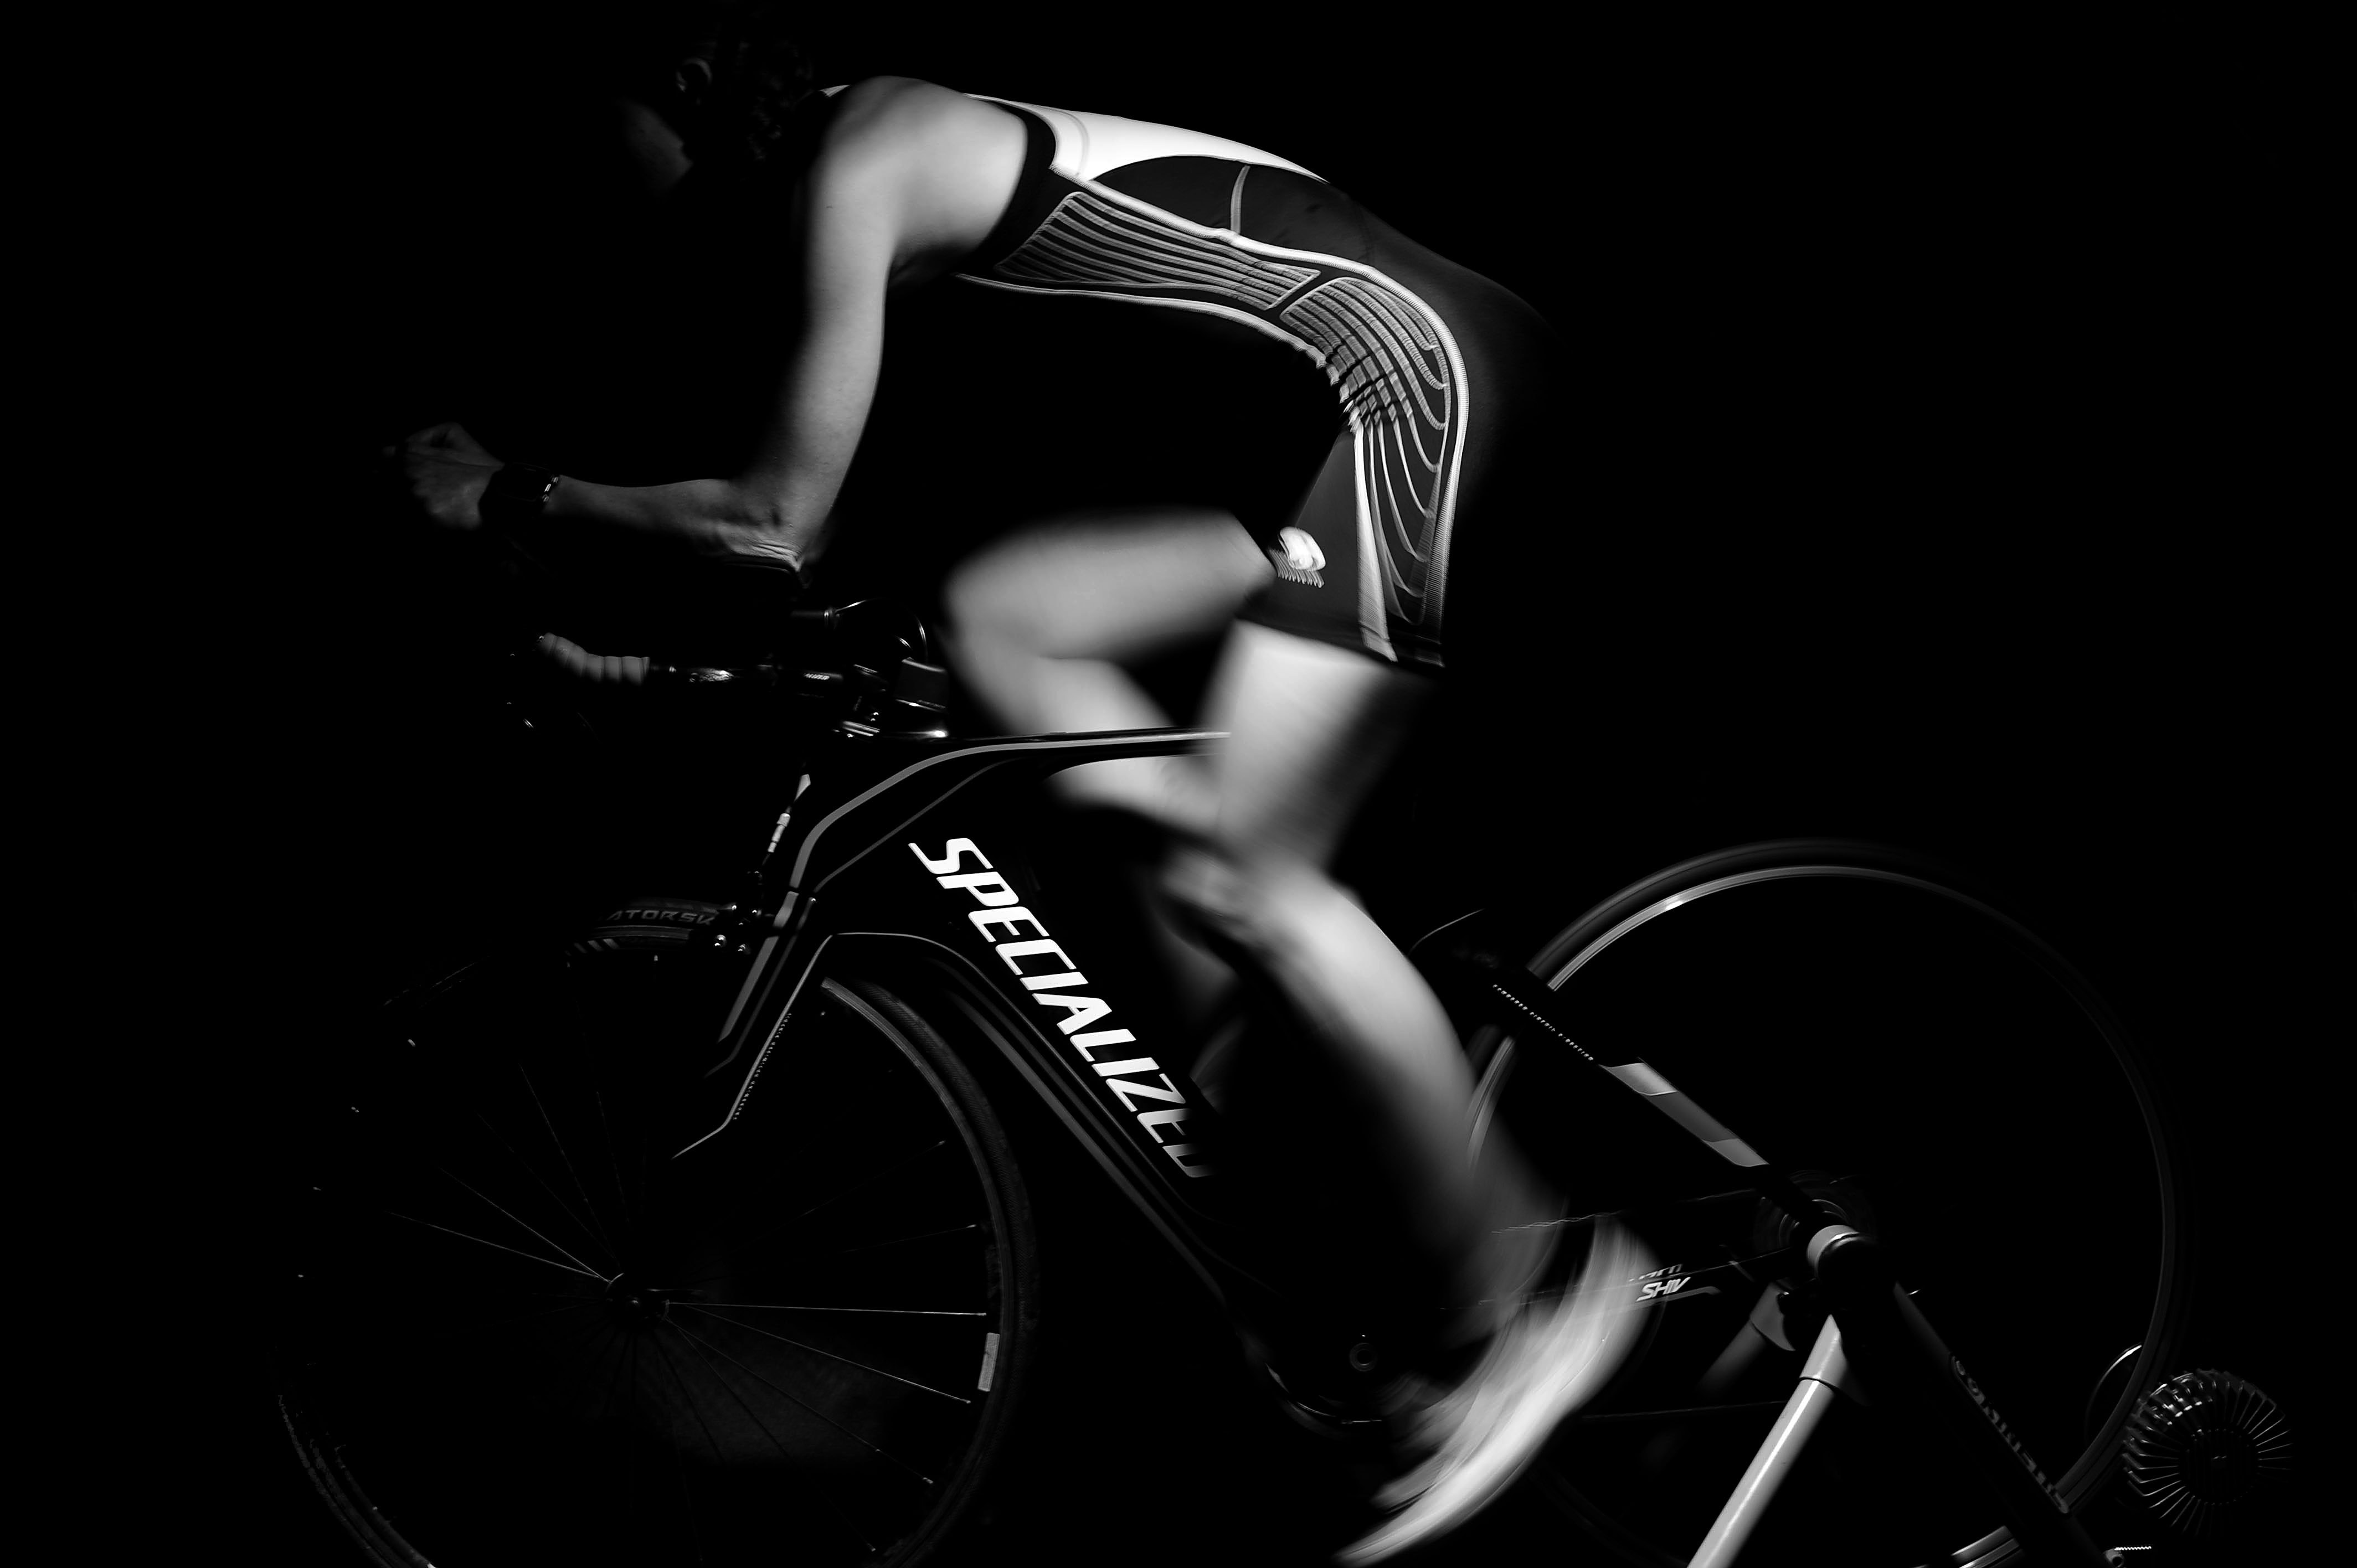 Best Exercise Bike for Bad Knees That is Easy on the Knees